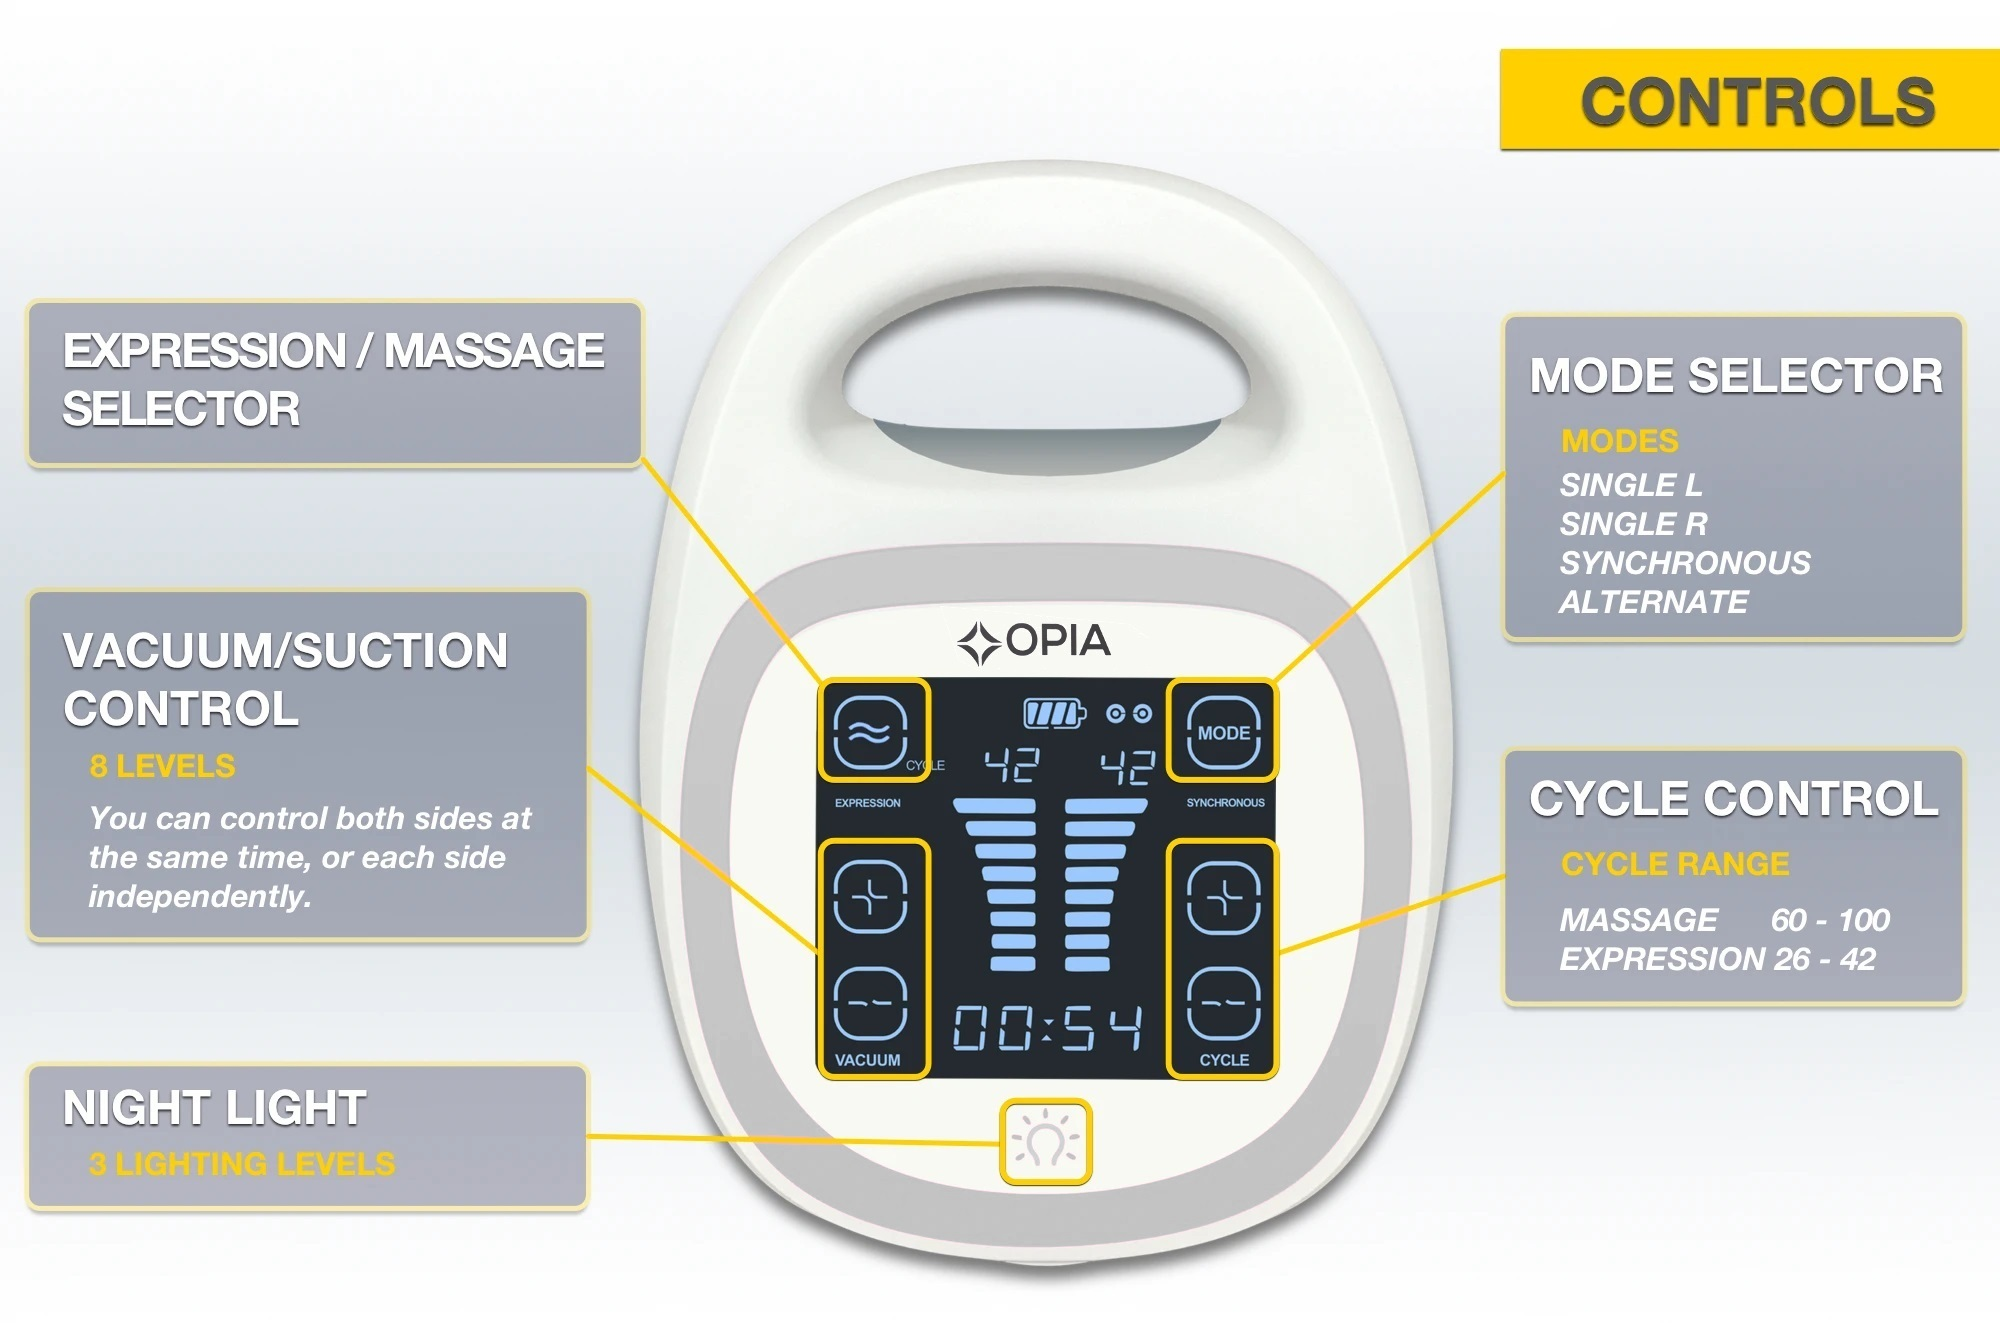 Opia Diamond Controls